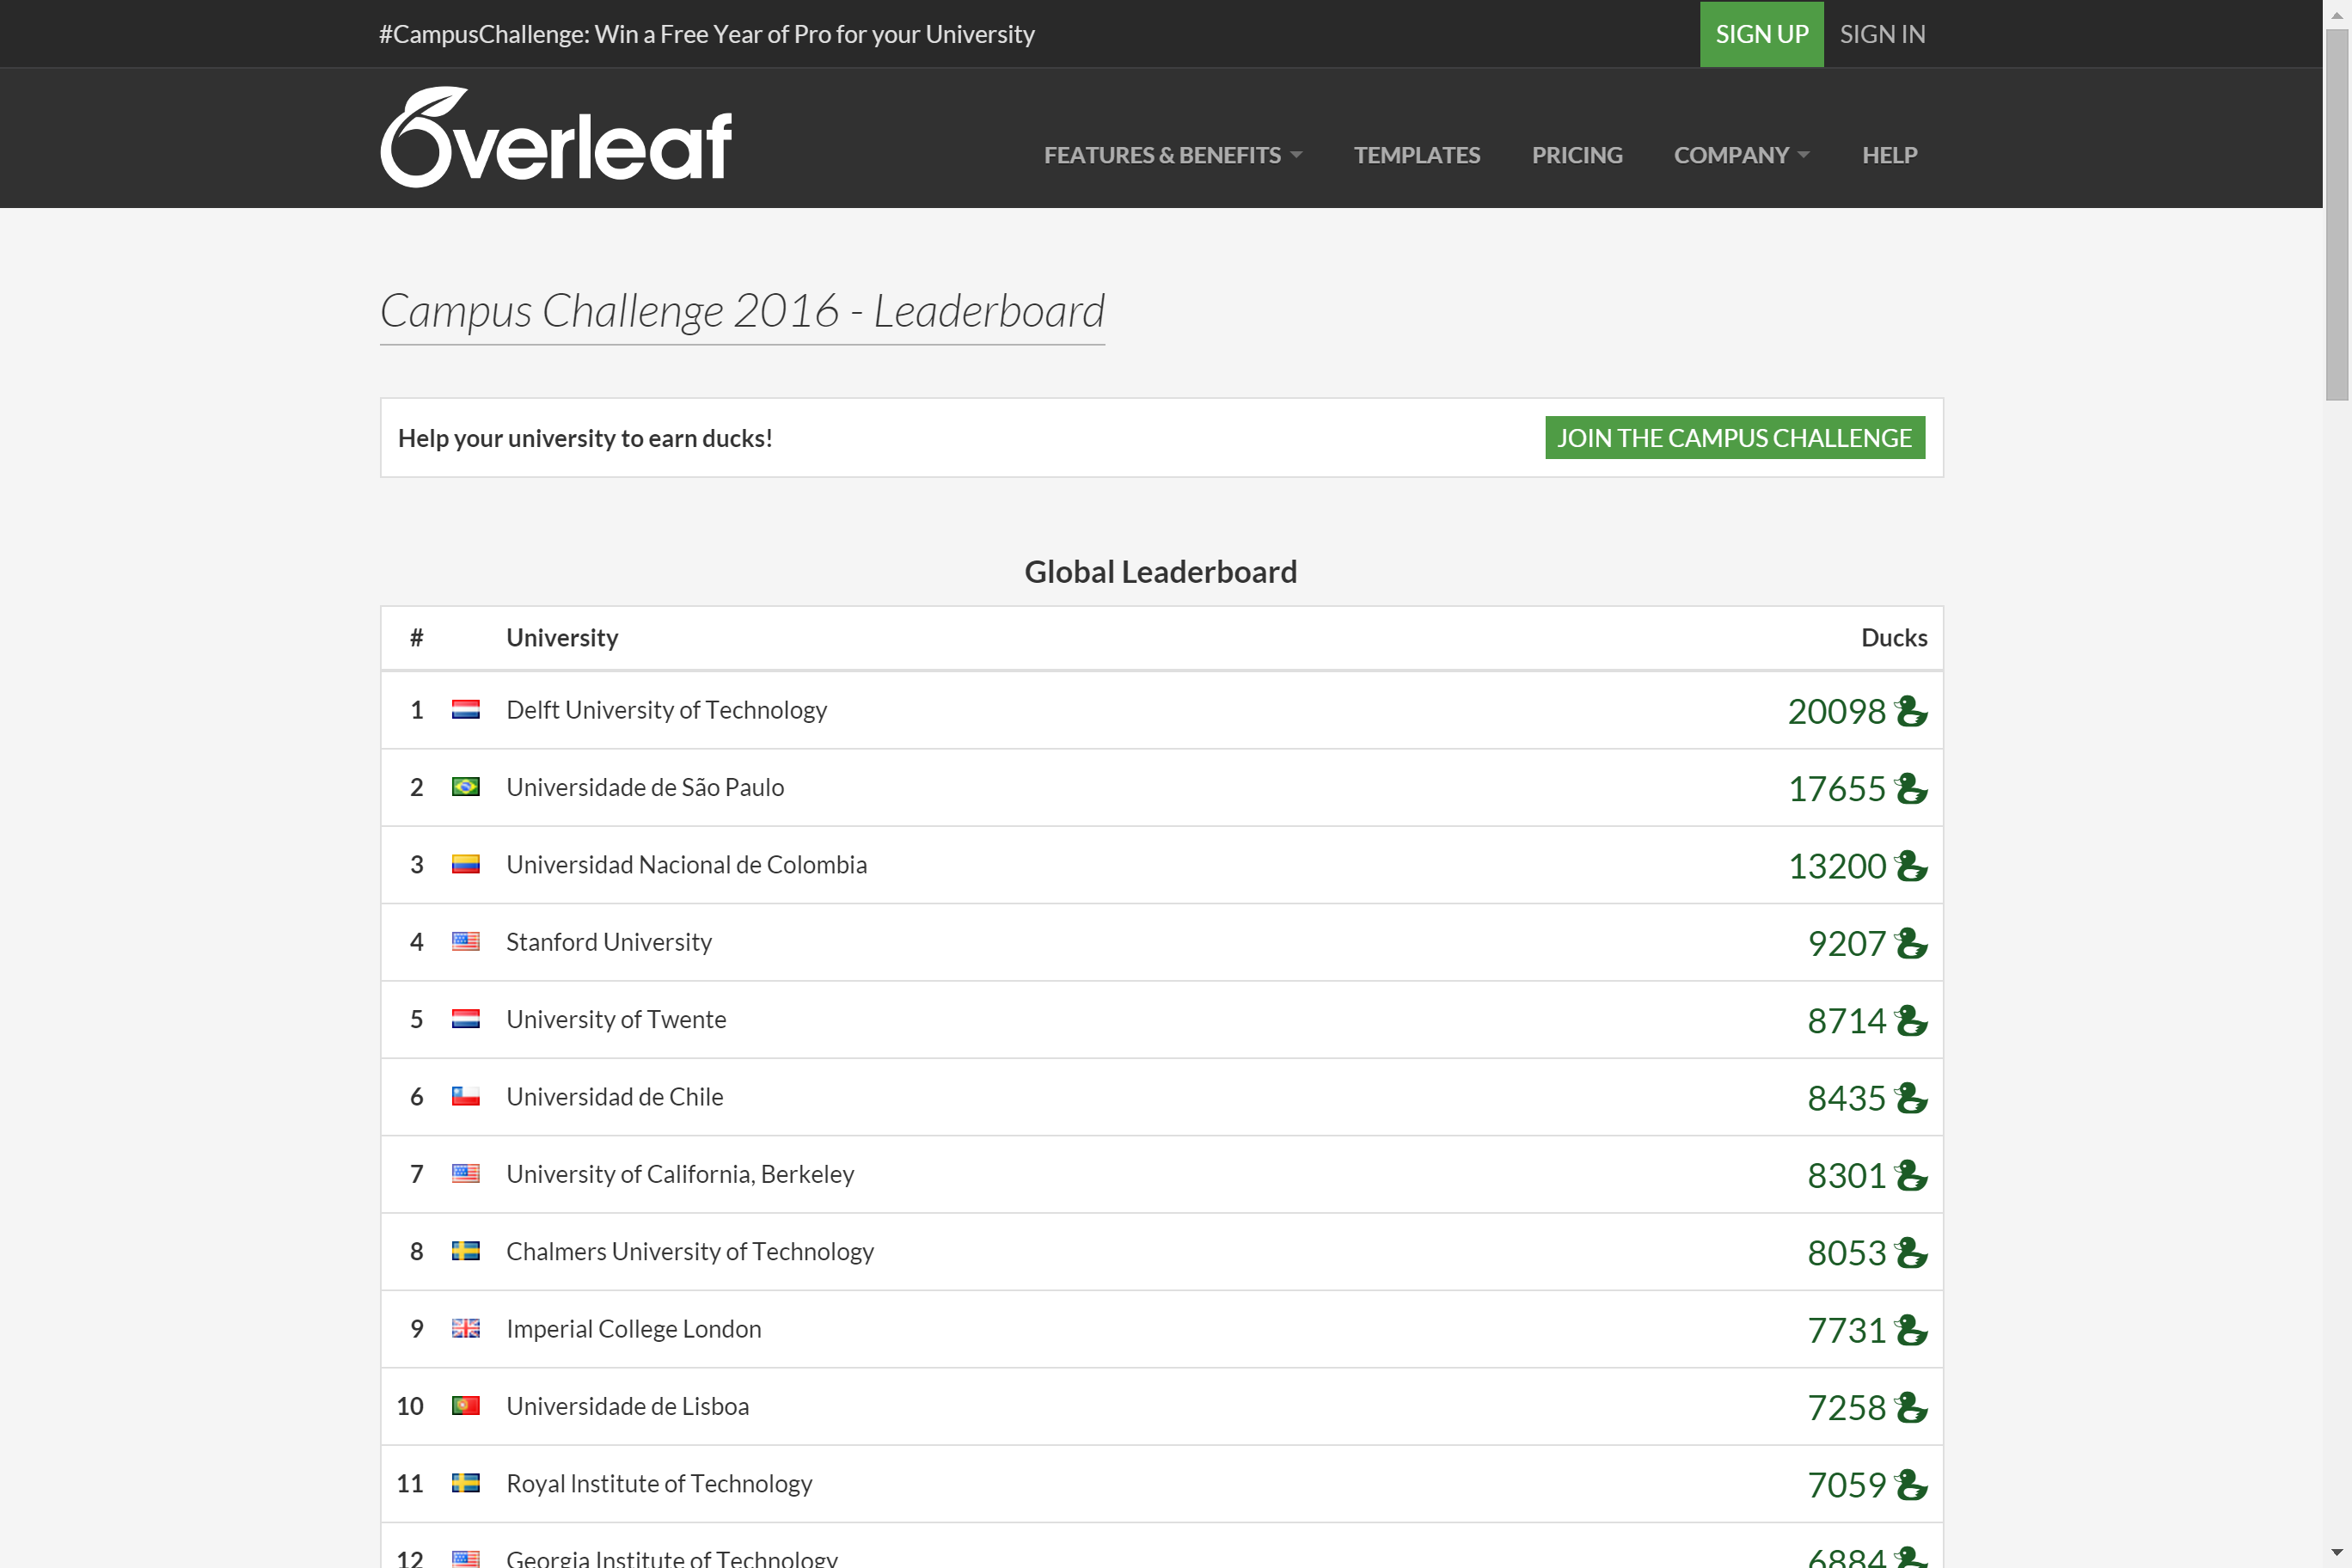 Overleaf Campus Challenge Table 10th March